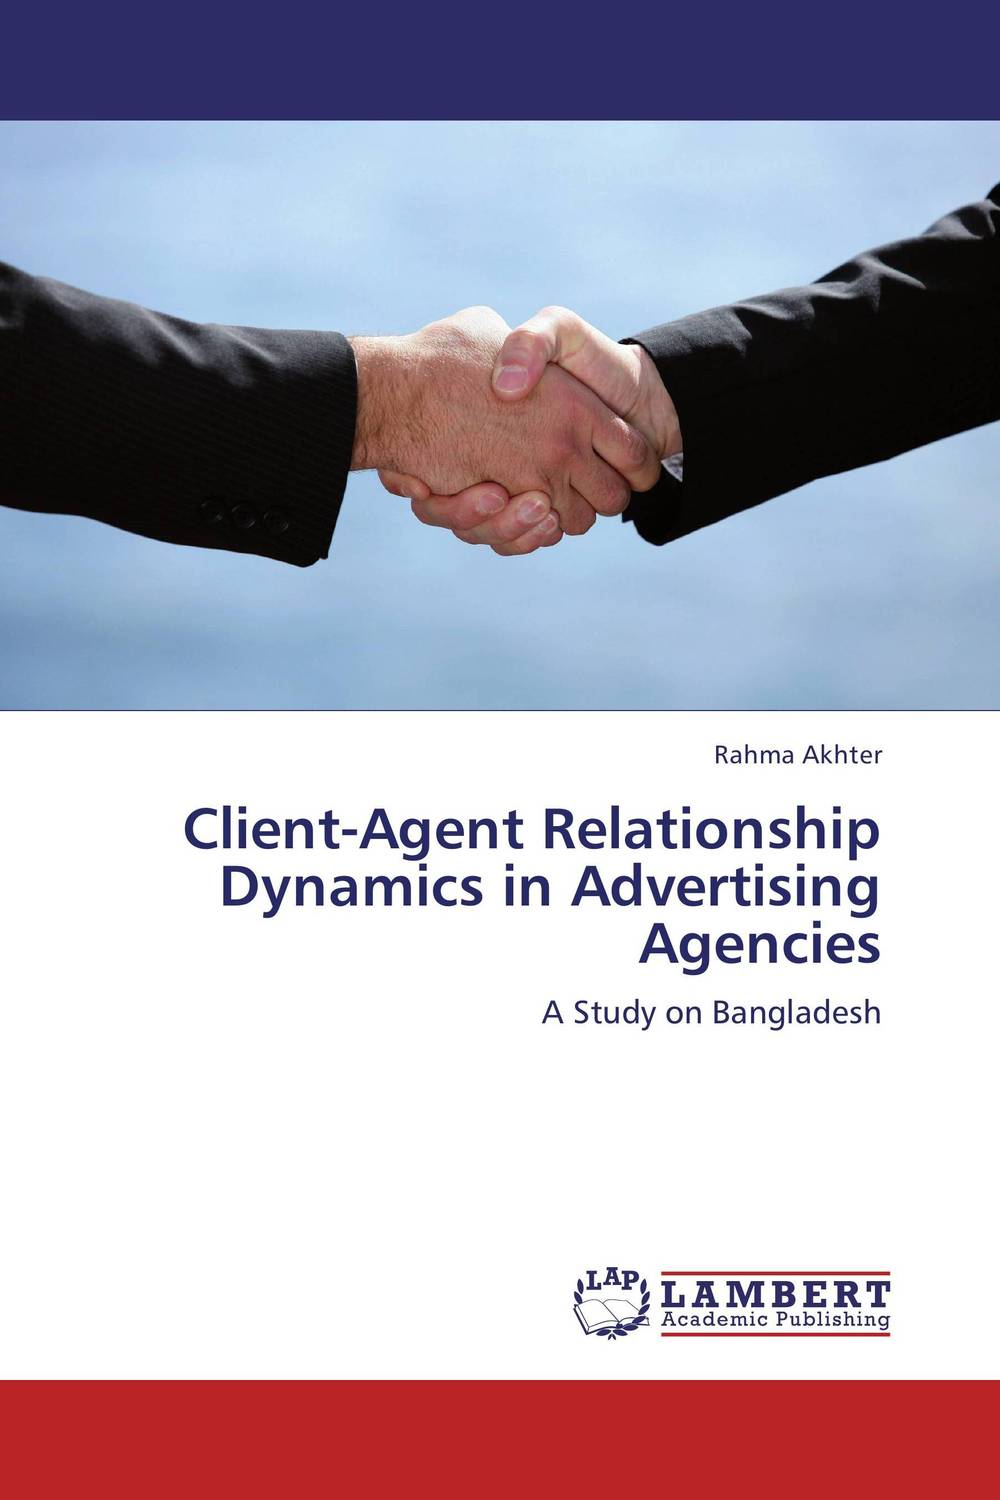 Client-Agent Relationship Dynamics in Advertising Agencies